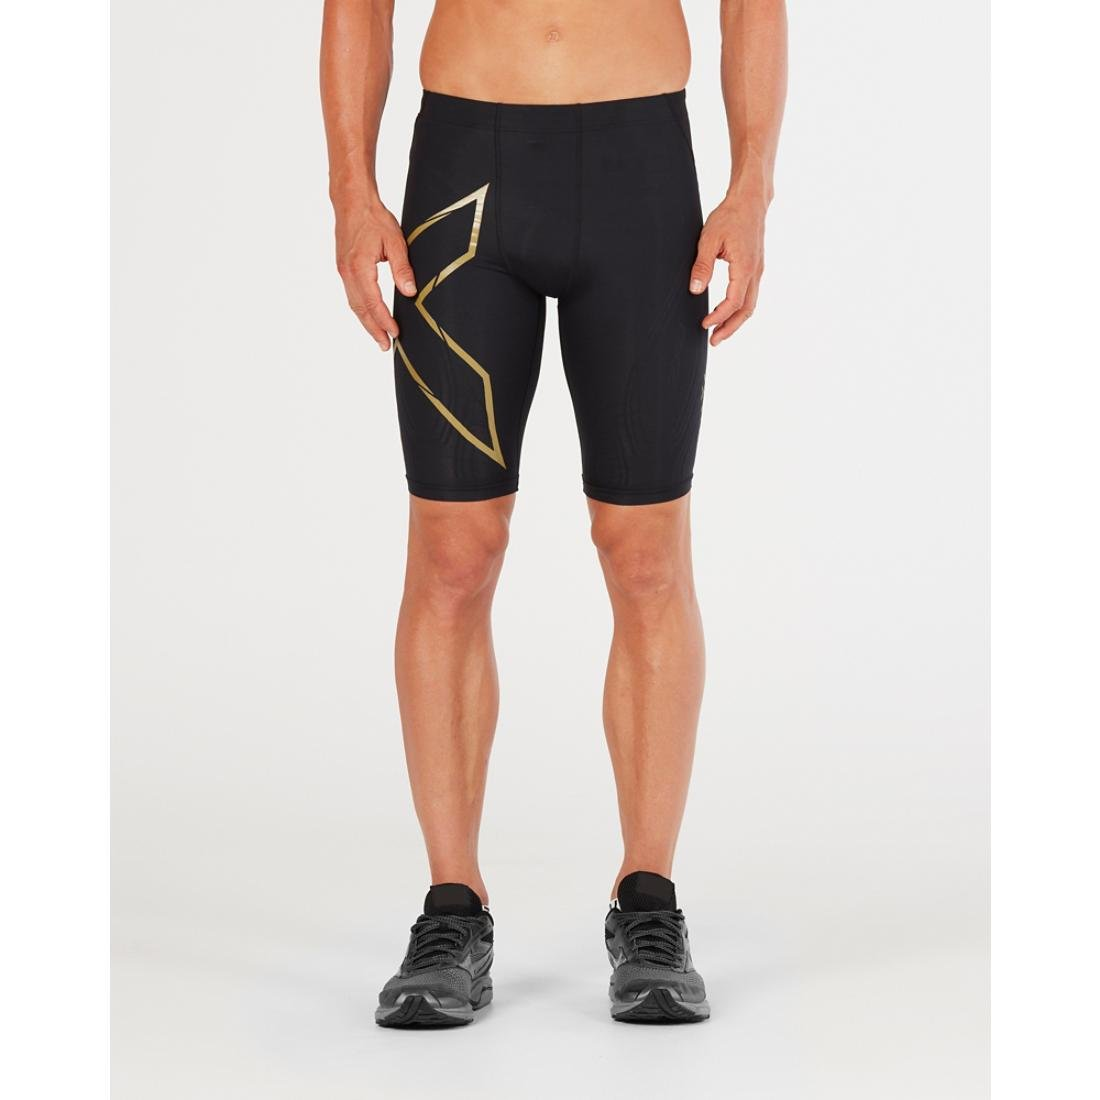 (Extra Small, Black/Gold) - 2XU Men's MCS Cross Training Compression Shorts B079P5FL9Y